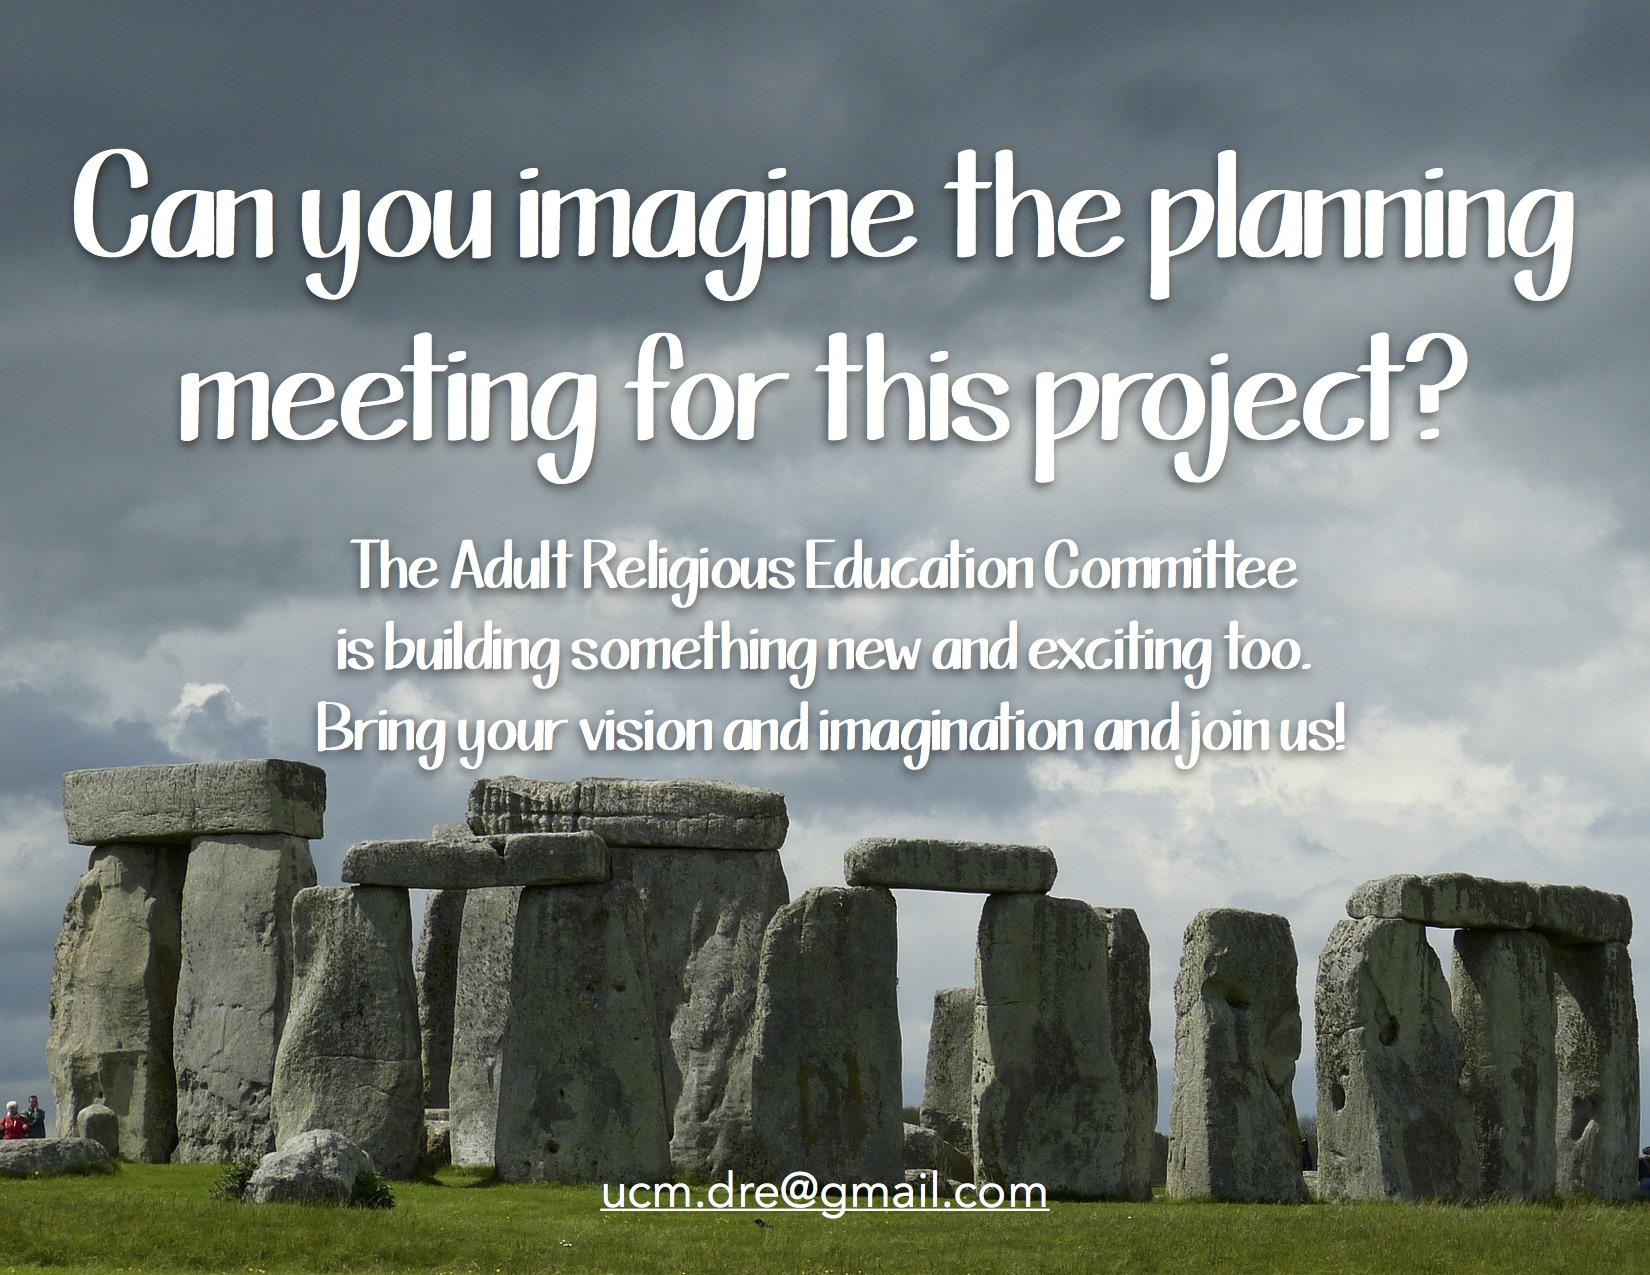 Stonehenge: Can you imagine the planning meeting for this project? The Adult Religious Education Committee is building something new and exciting too. Bring your vision and imagination and join us! contact ucm.dre@gmail.com